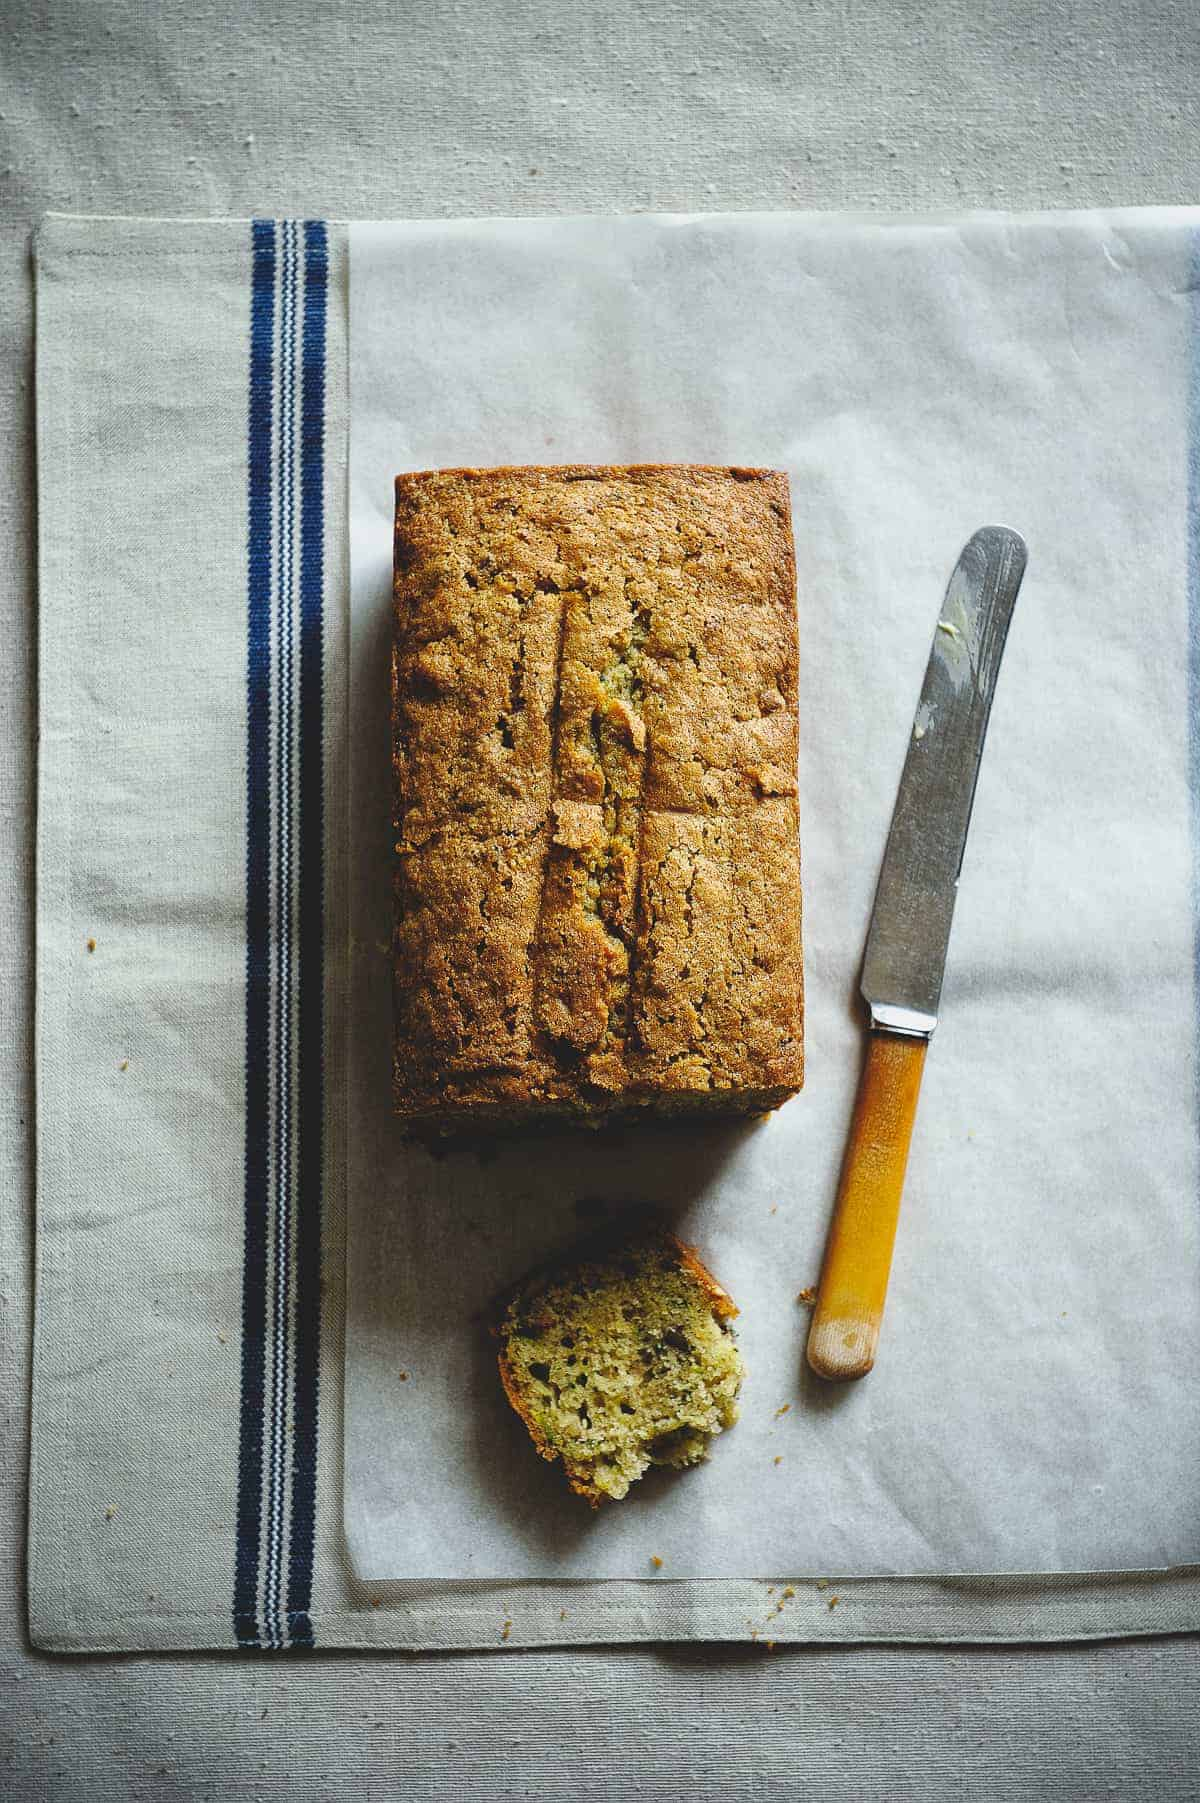 top down view of a zucchini bread on a table with a knife next to it